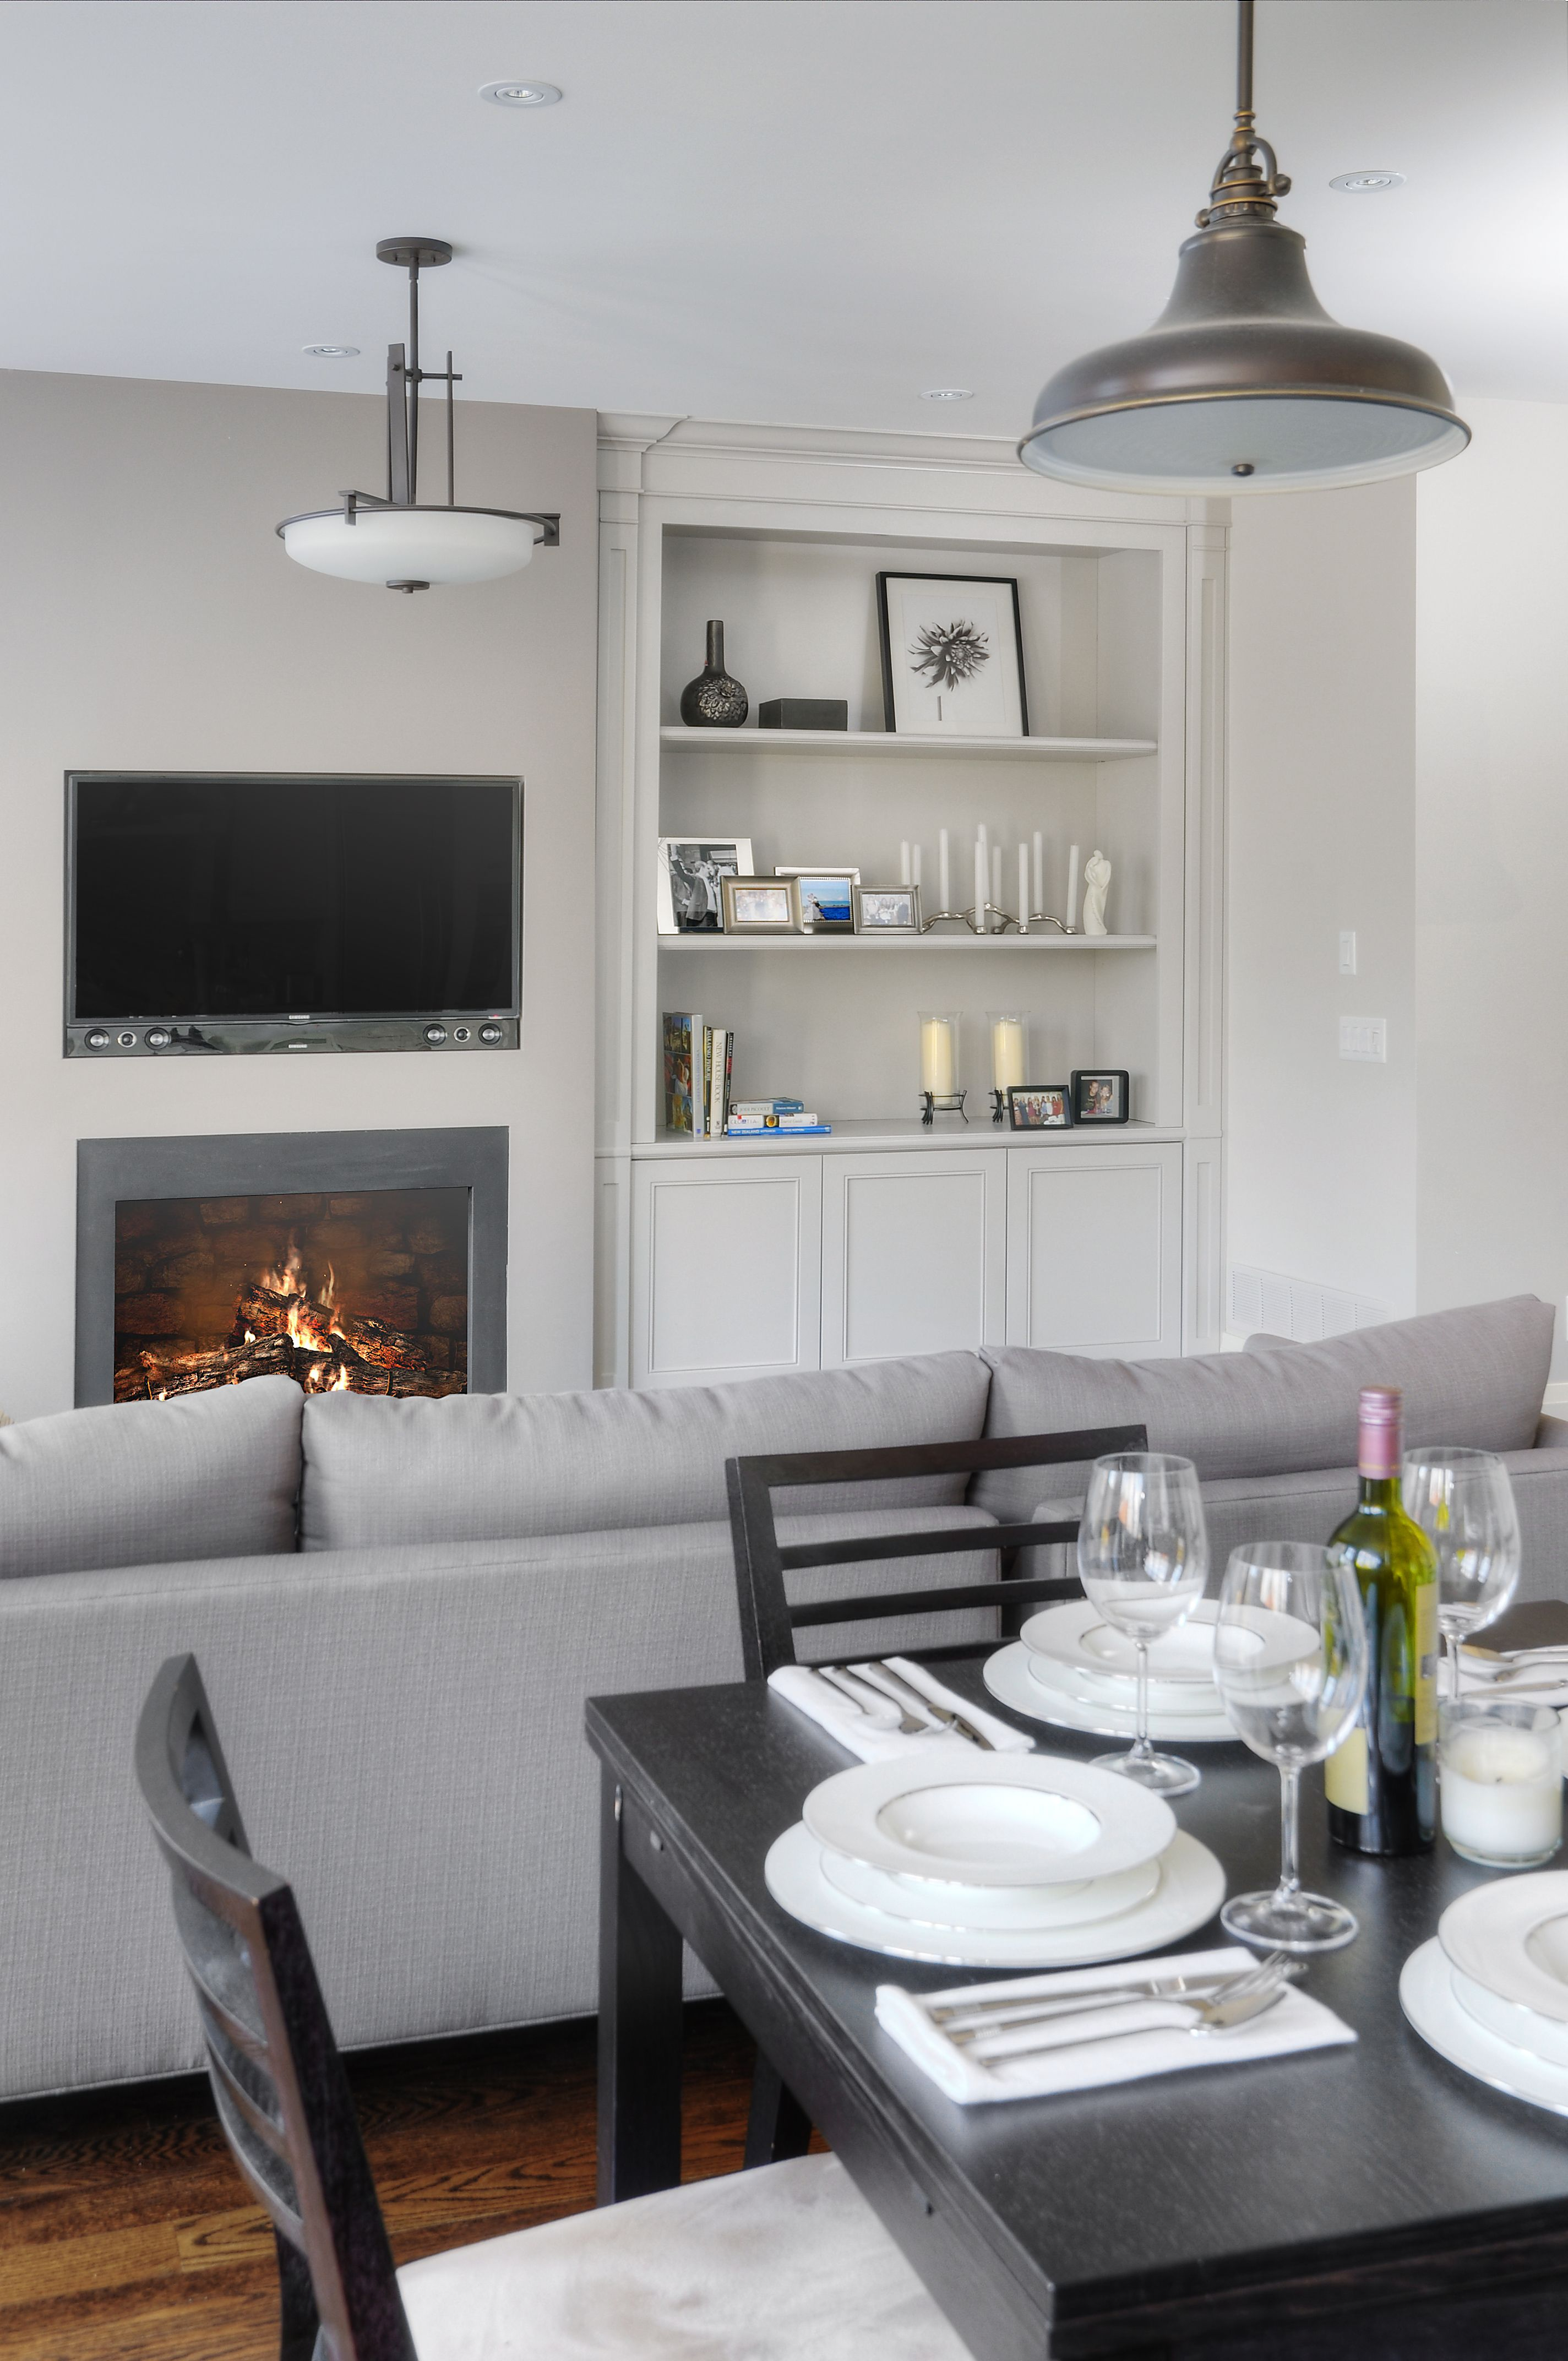 Best Painted Milan Style Custom Cabinetry With Open Shelving 400 x 300